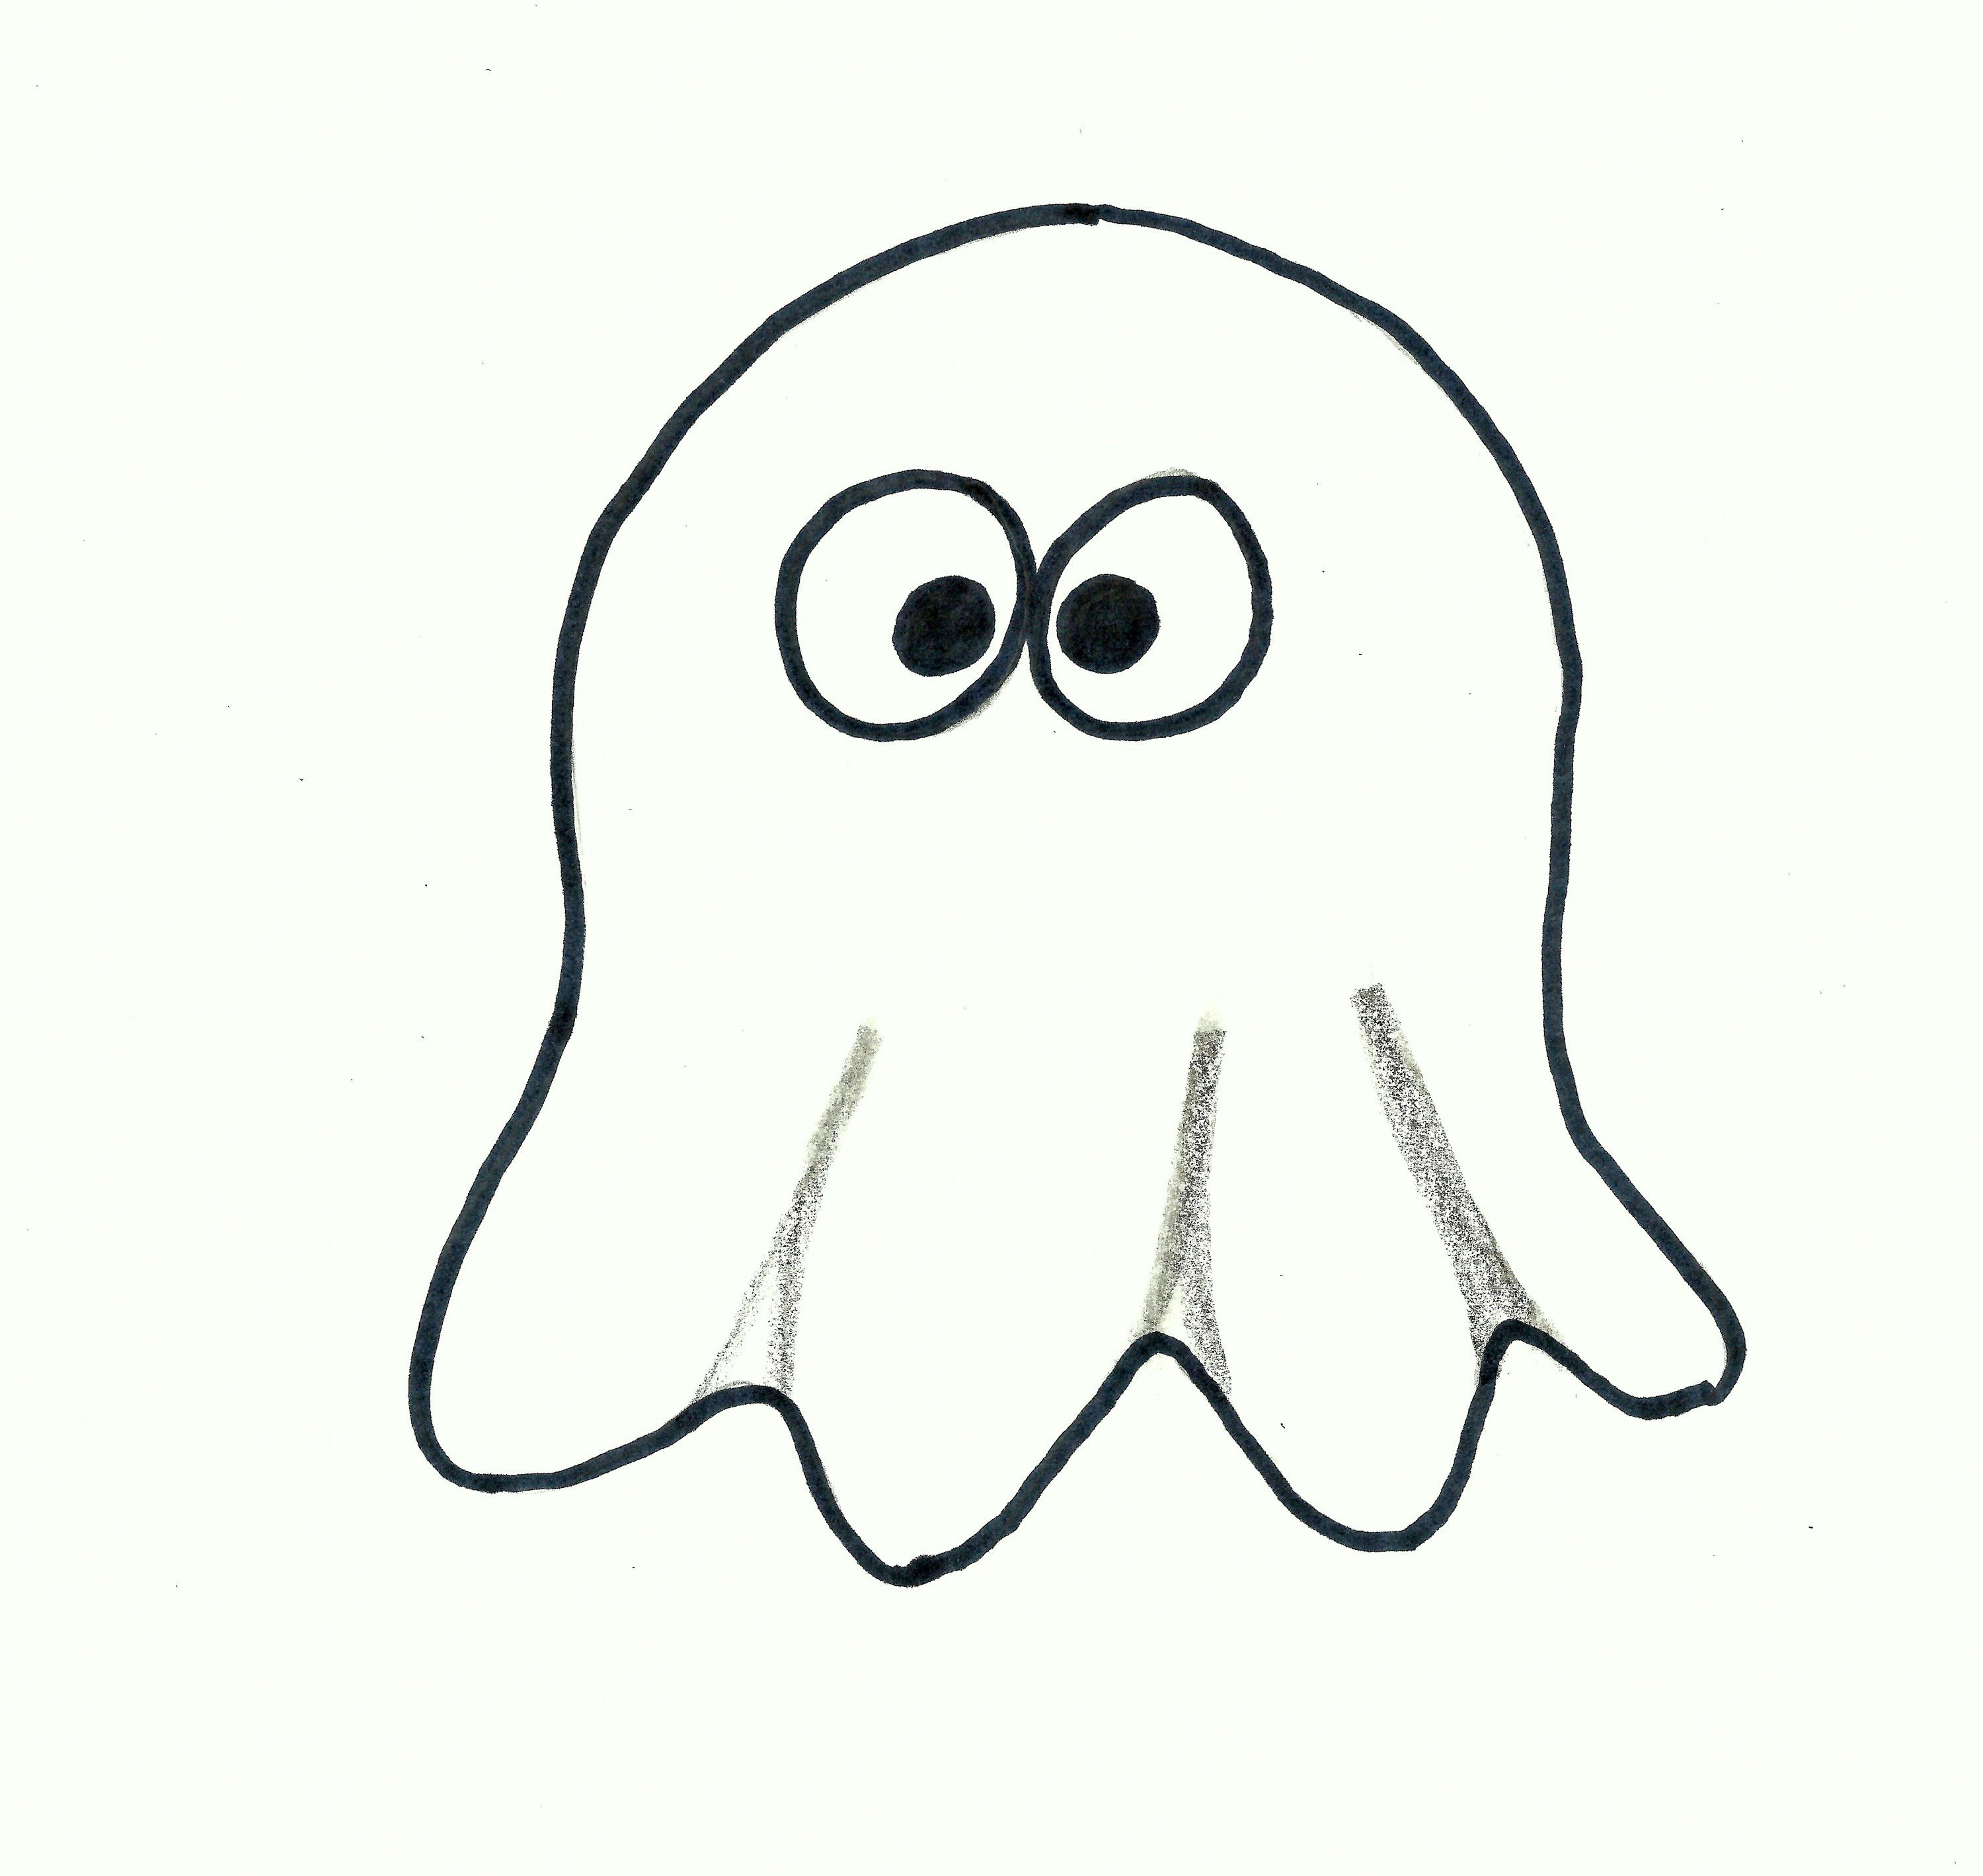 How To Draw A Halloween Ghost Cartoon Easy Drawing Lesson For Kids Youtube Easy Cartoon Drawings Easy Drawings Cool Easy Drawings